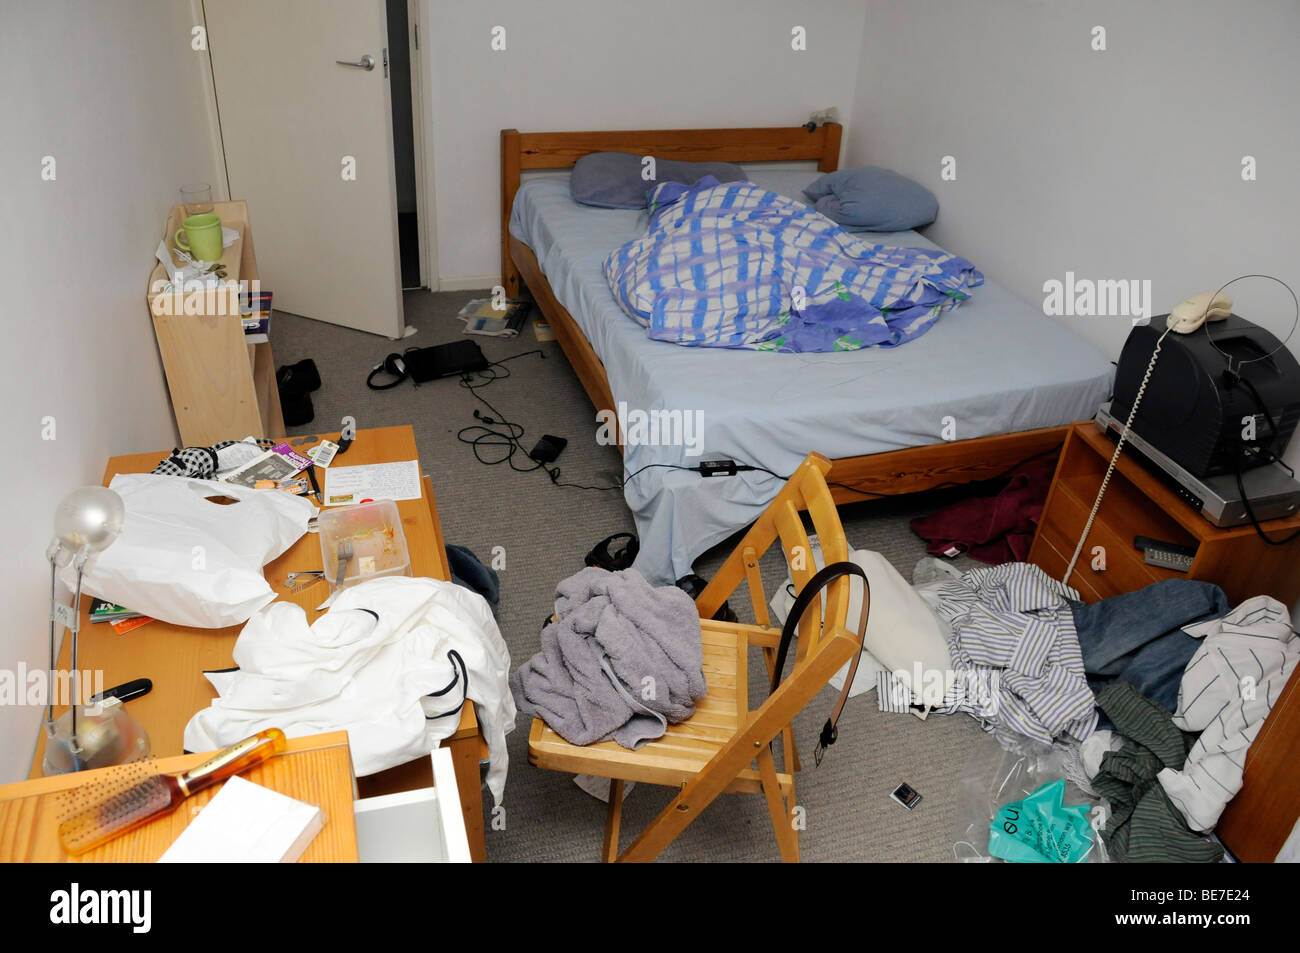 Messy Bedroom Boys Stock Photos & Messy Bedroom Boys Stock ...